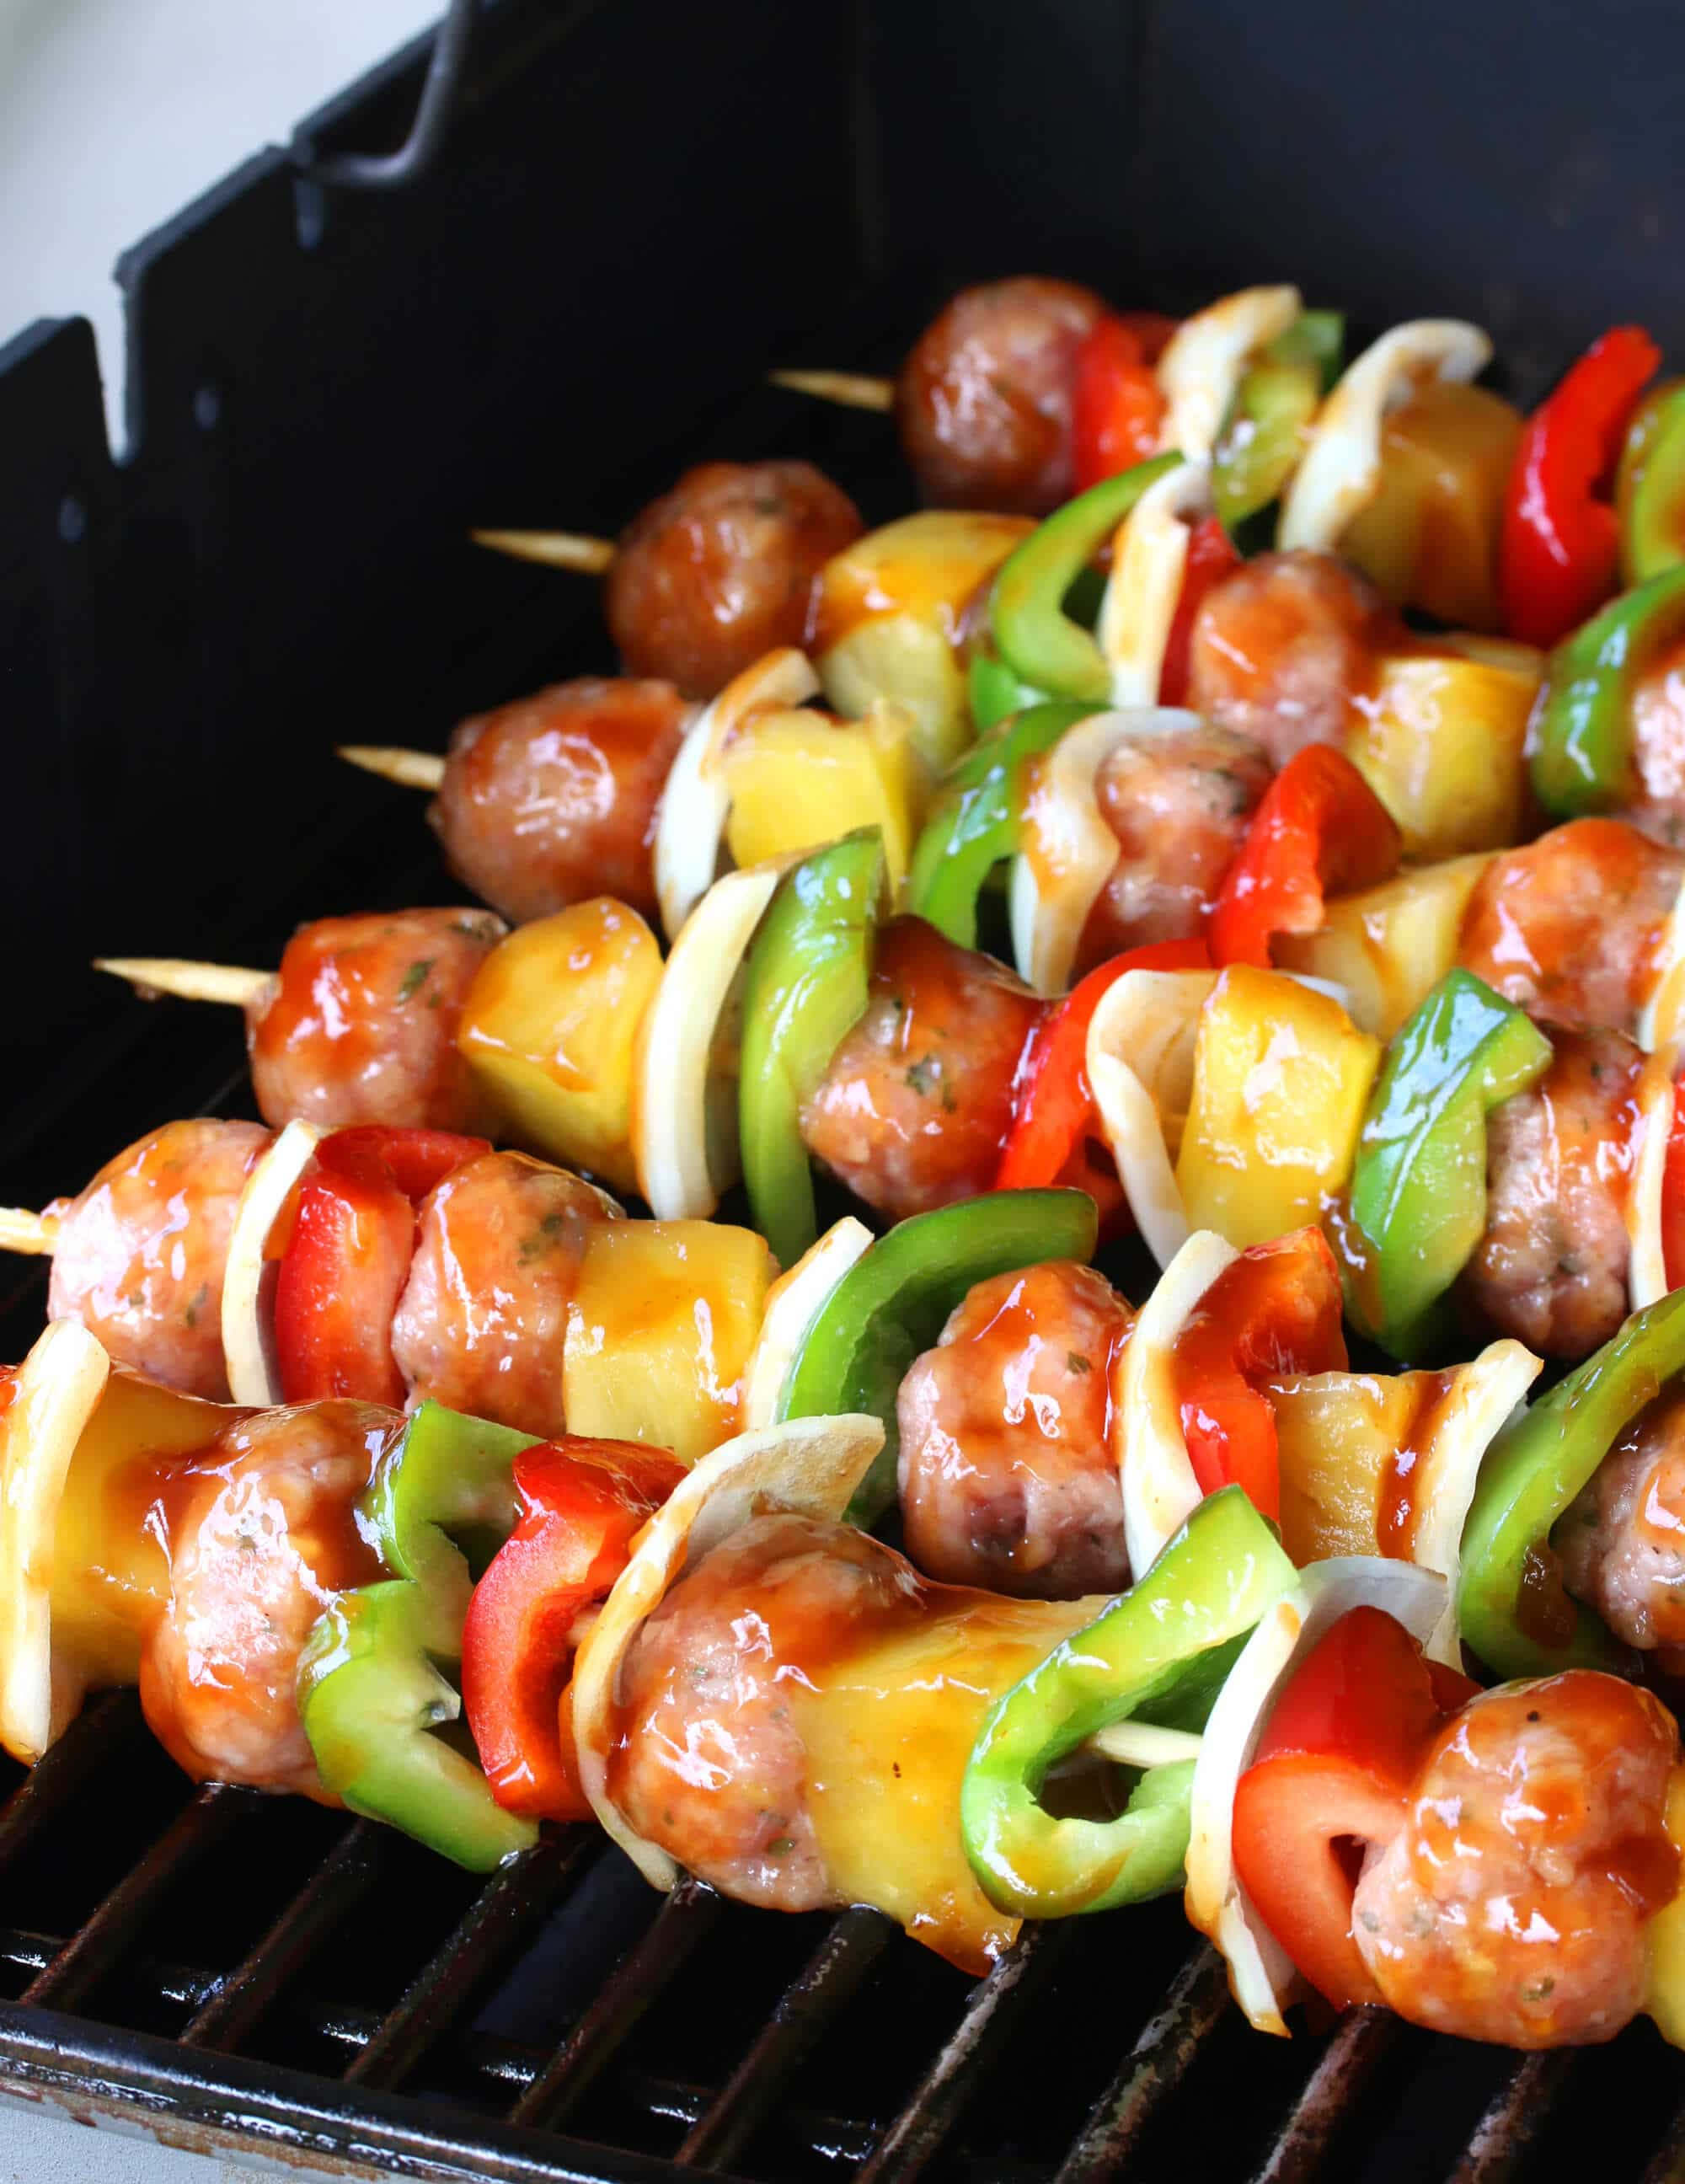 Grilled Sweet Amp Sour Veal Meatball Kabobs The Daring Gourmet